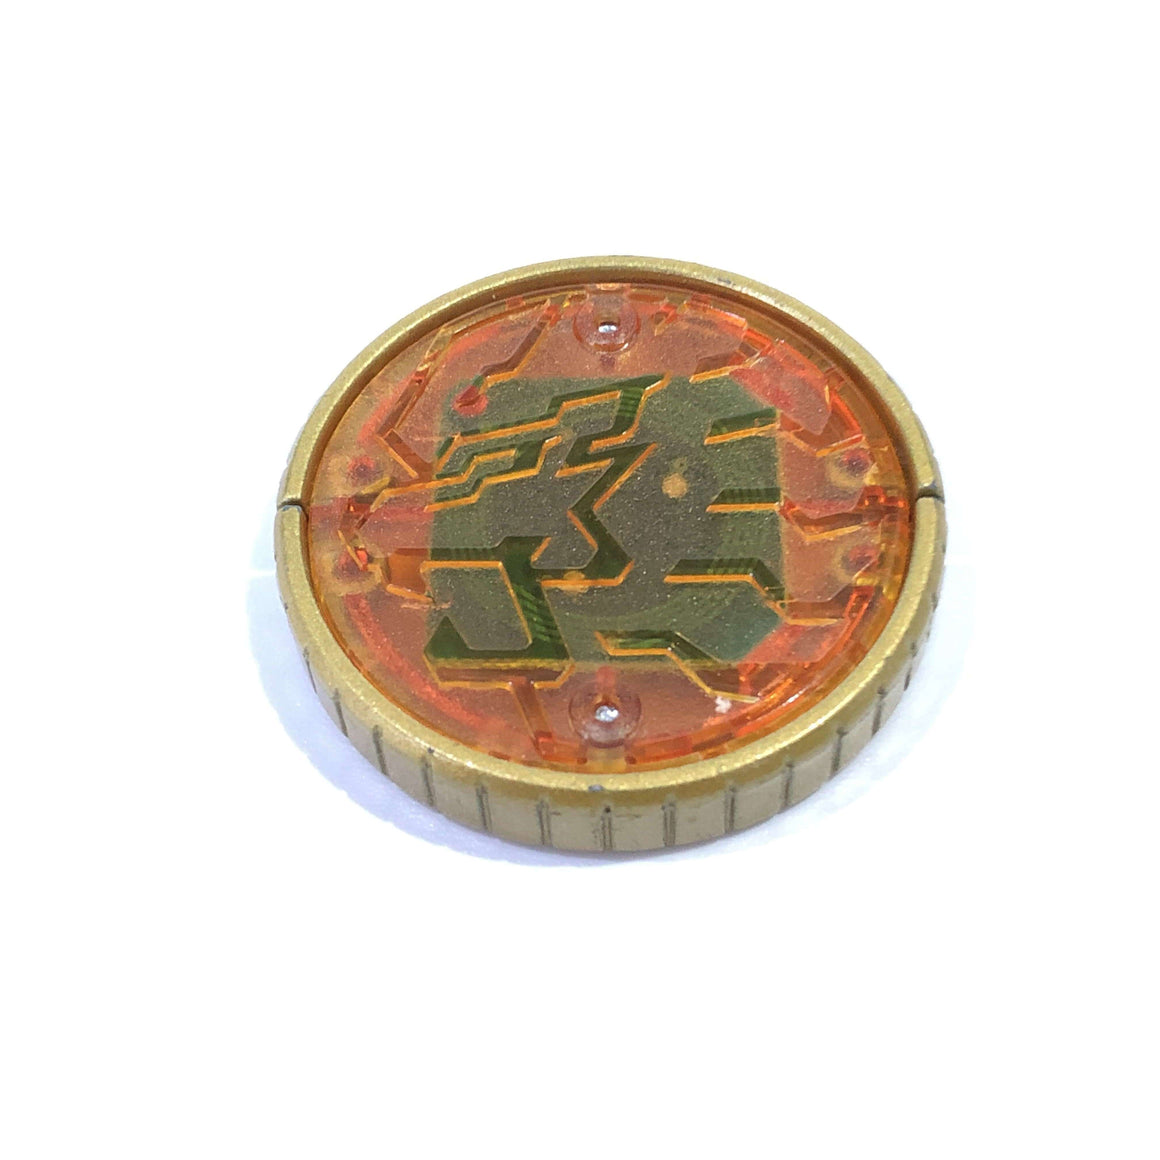 CSTOYS INTERNATIONAL:[LOOSE] Kamen Rider OOO: DX Lion Core Medal